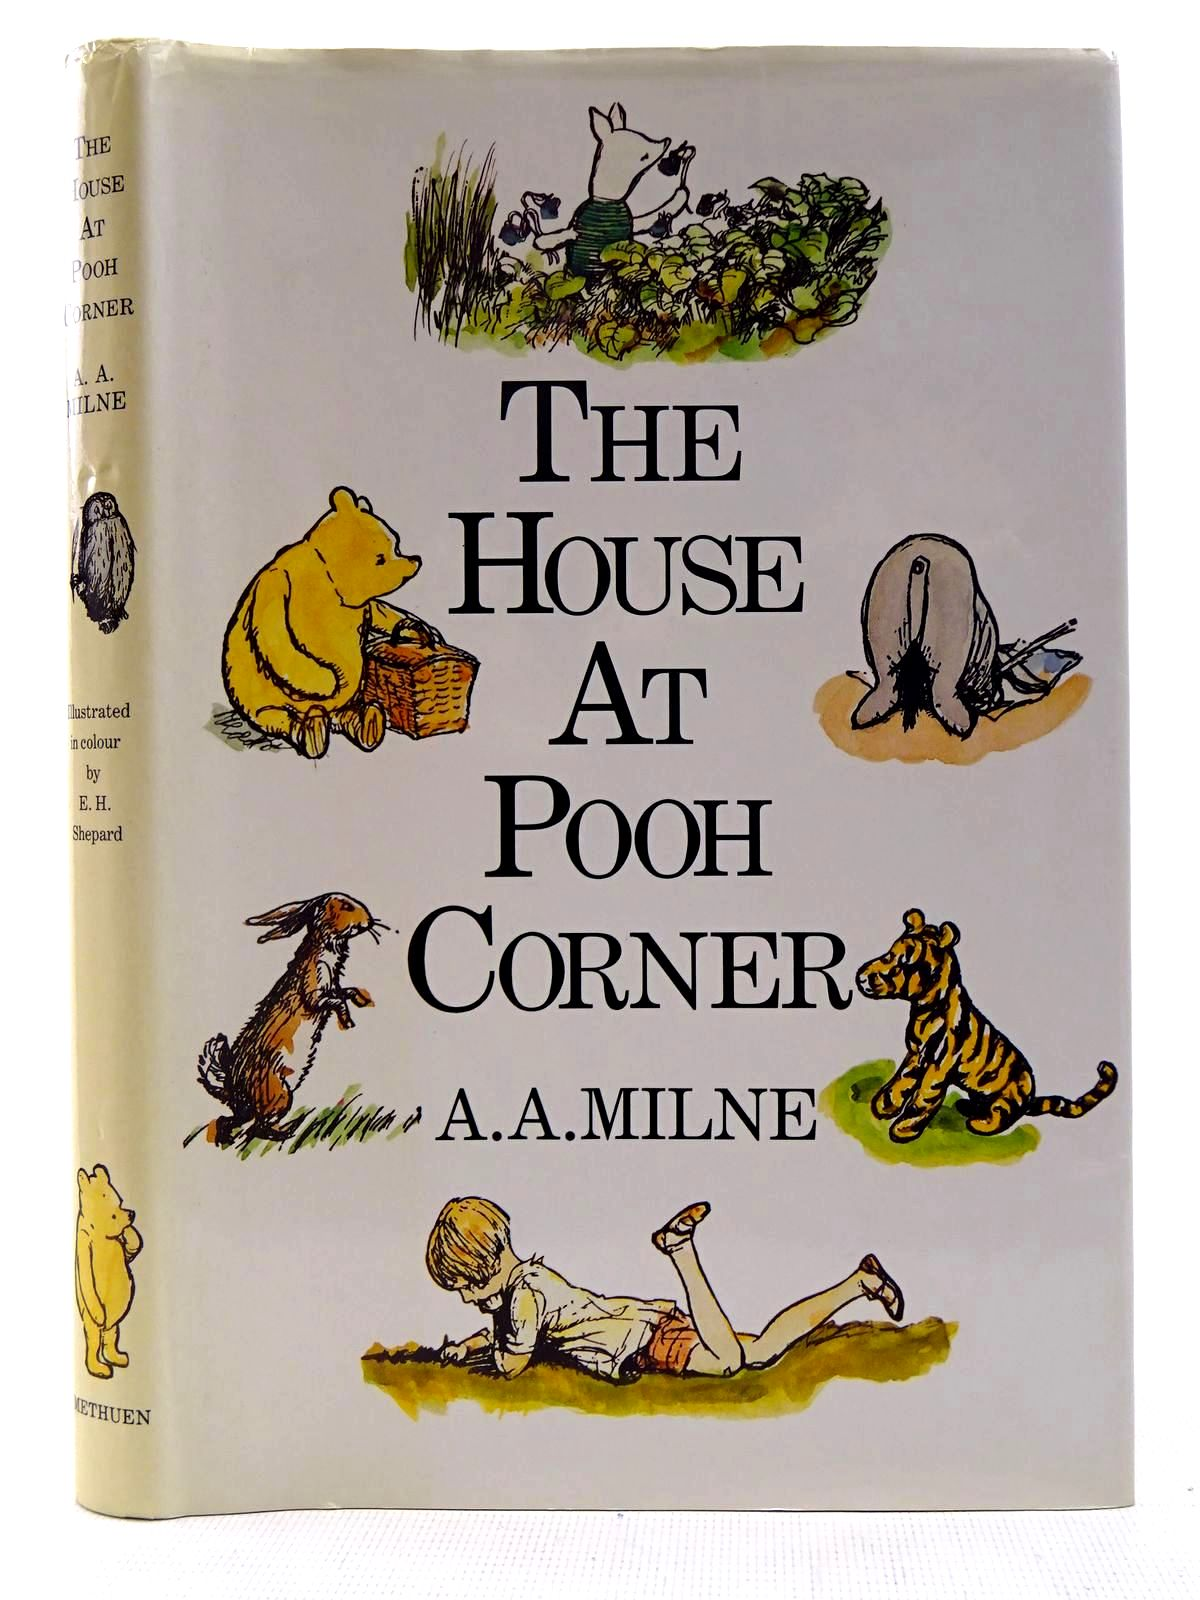 Photo of THE HOUSE AT POOH CORNER written by Milne, A.A. illustrated by Shepard, E.H. published by Methuen Children's Books (STOCK CODE: 2128130)  for sale by Stella & Rose's Books